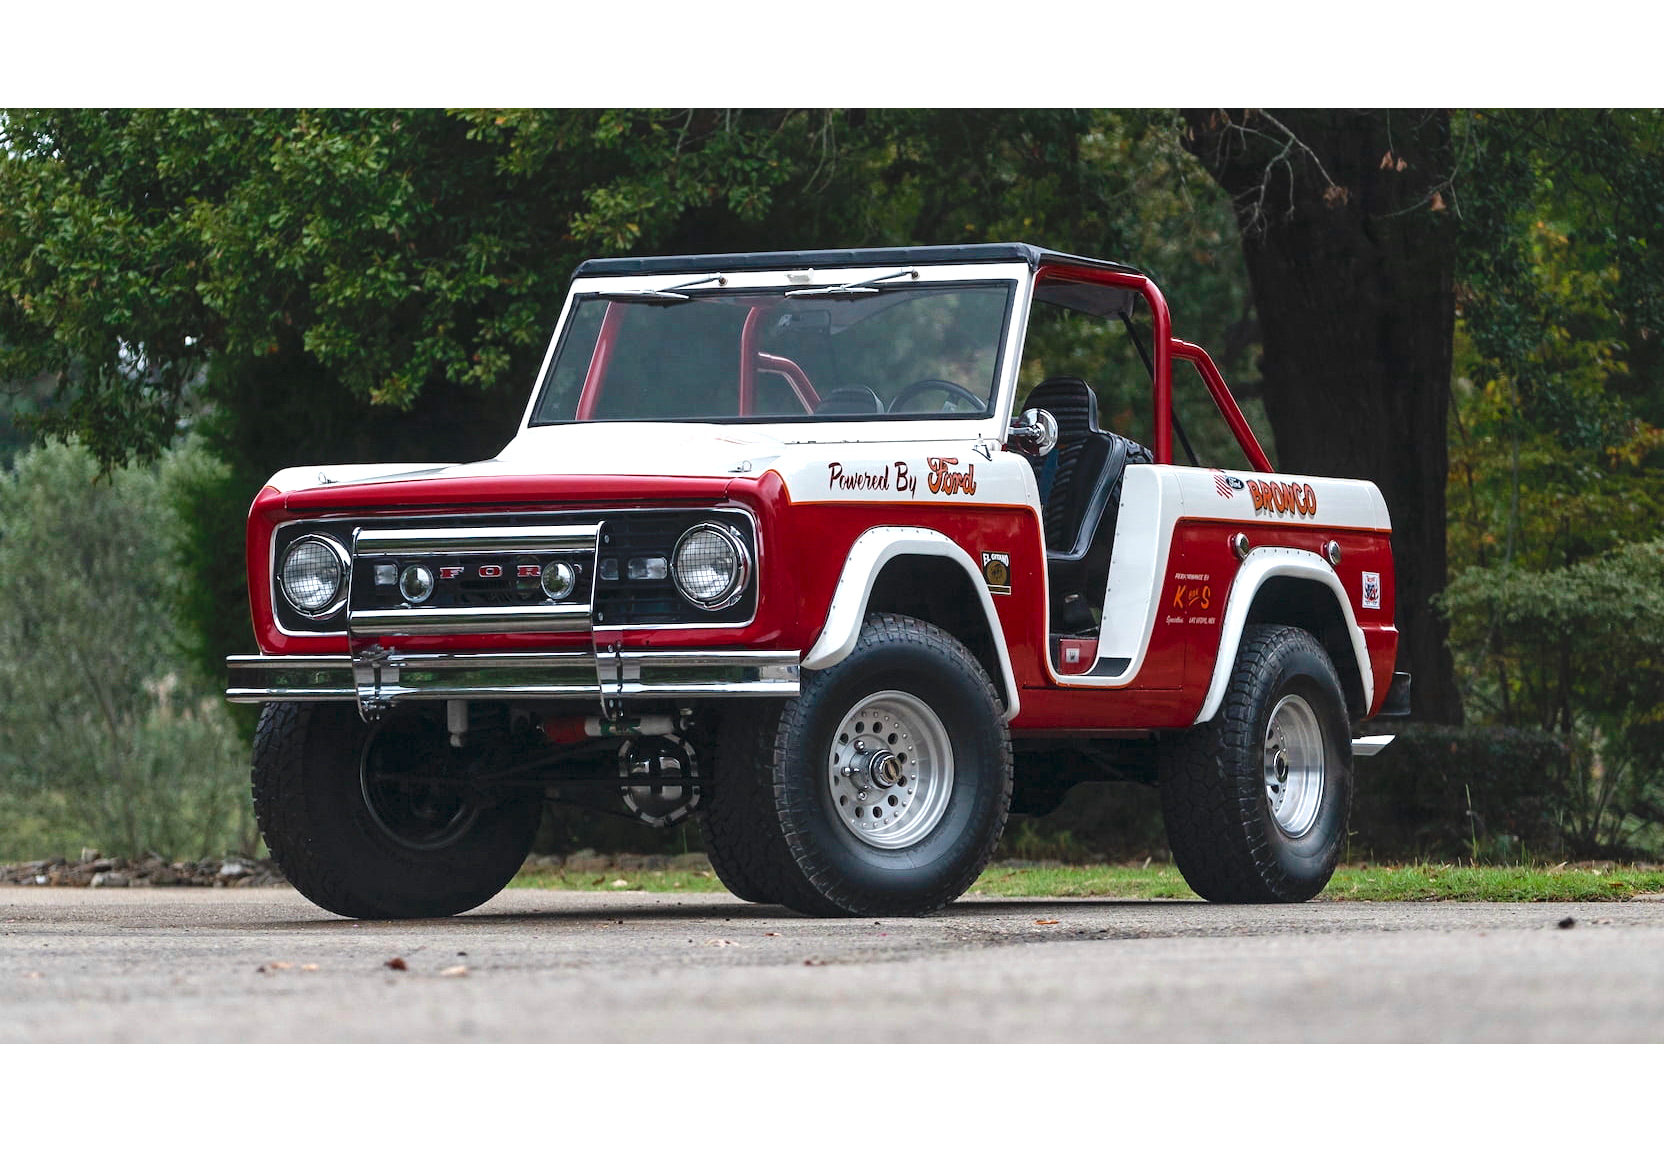 1 of 12 – A Rare Ford Bronco Desert Racer Built By K Bar S